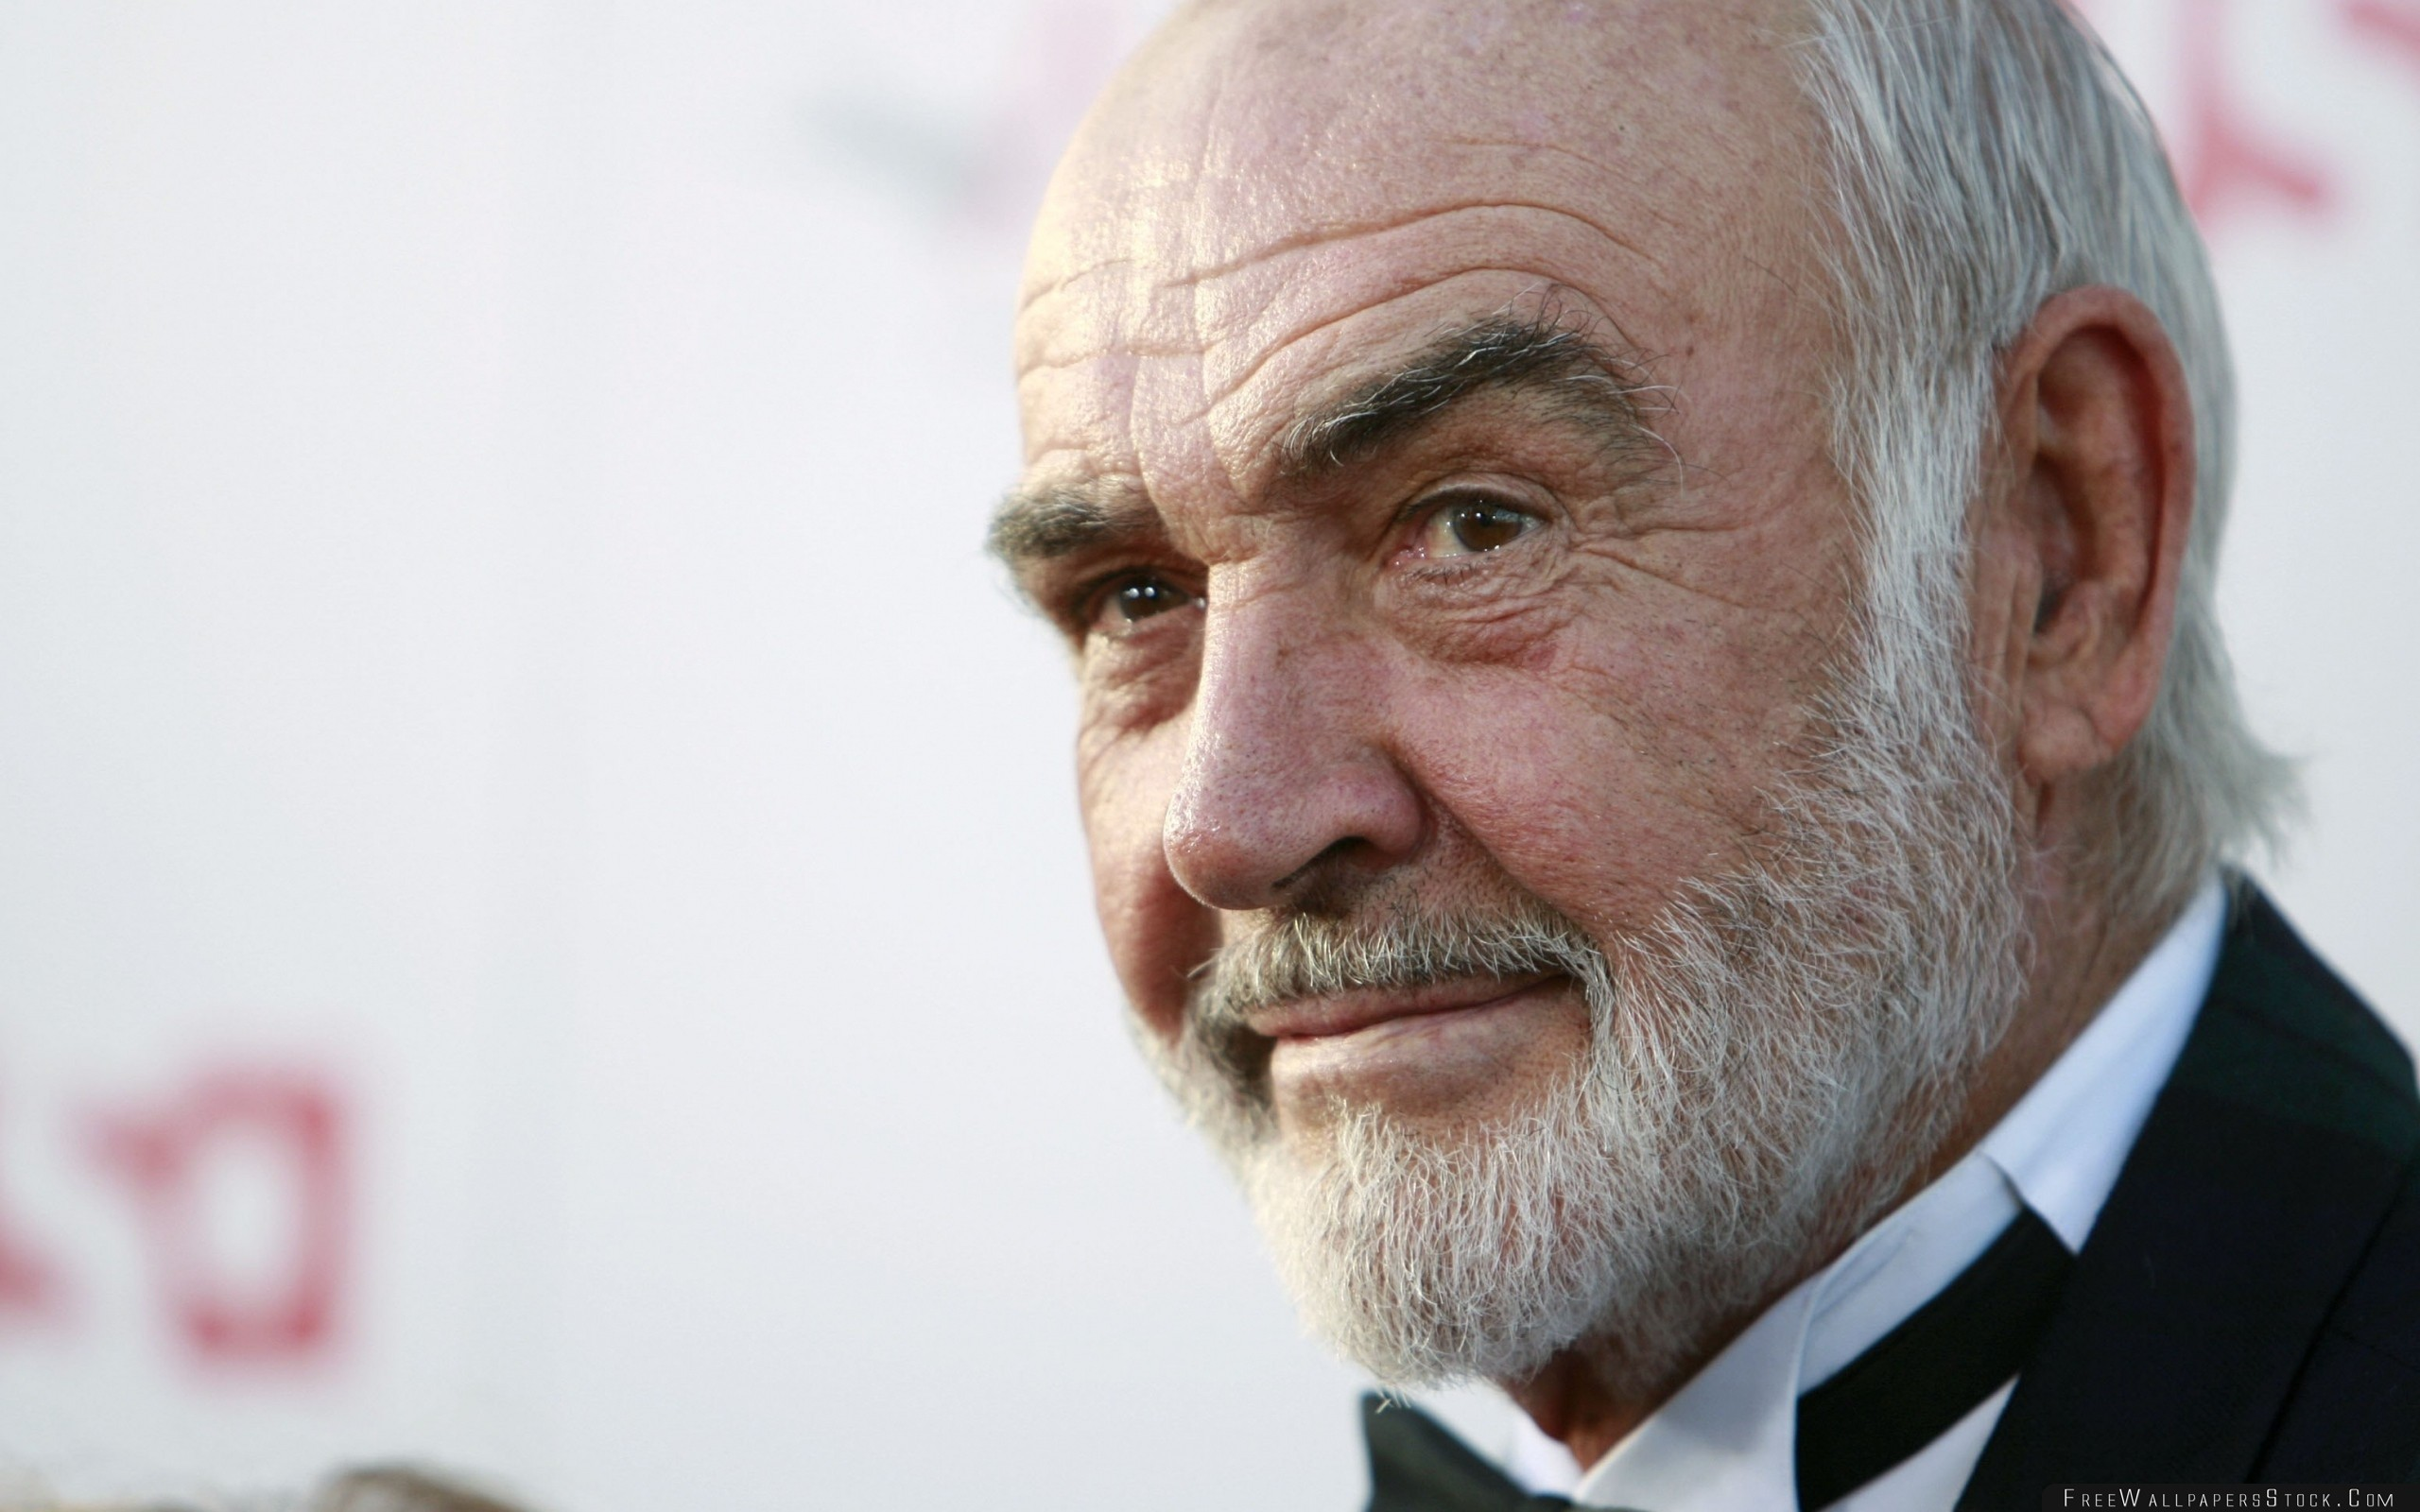 Download Free Wallpaper Sean Connery Gray Haired Face Hair Celebrity Hollywood